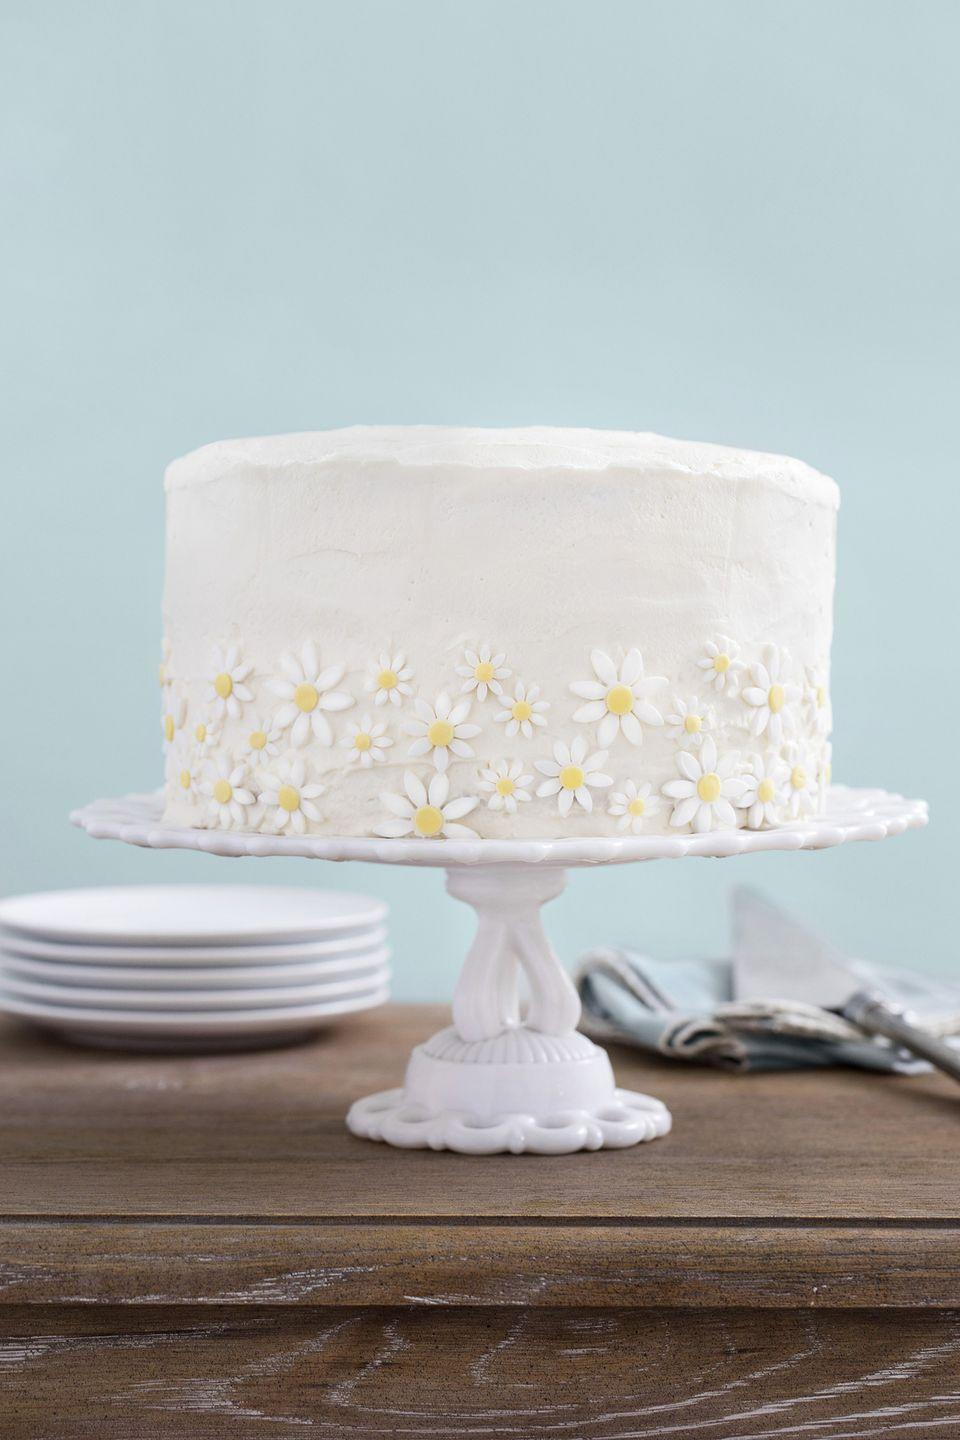 """<p>Premade fondant daisy flowers give this cake centerpiece status.</p><p><strong><a href=""""https://www.countryliving.com/food-drinks/recipes/a35037/lemon-coconut-cake-with-mascarpone-frosting/"""" rel=""""nofollow noopener"""" target=""""_blank"""" data-ylk=""""slk:Get the recipe"""" class=""""link rapid-noclick-resp"""">Get the recipe</a>.</strong></p>"""